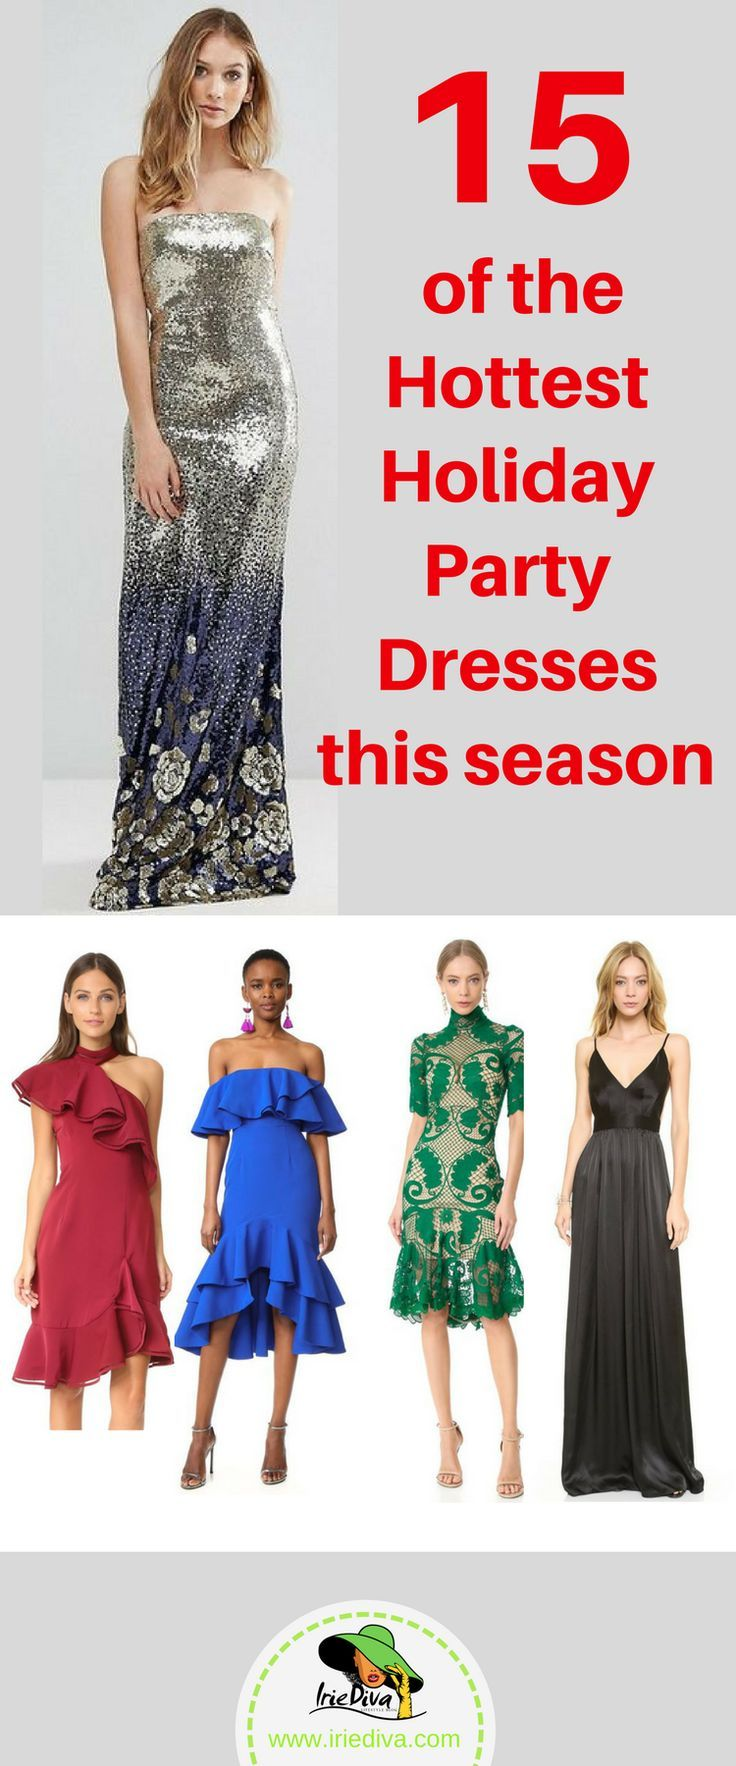 2f86d8150dd These dresses are perfect for the upcoming holiday party season. Sparkly